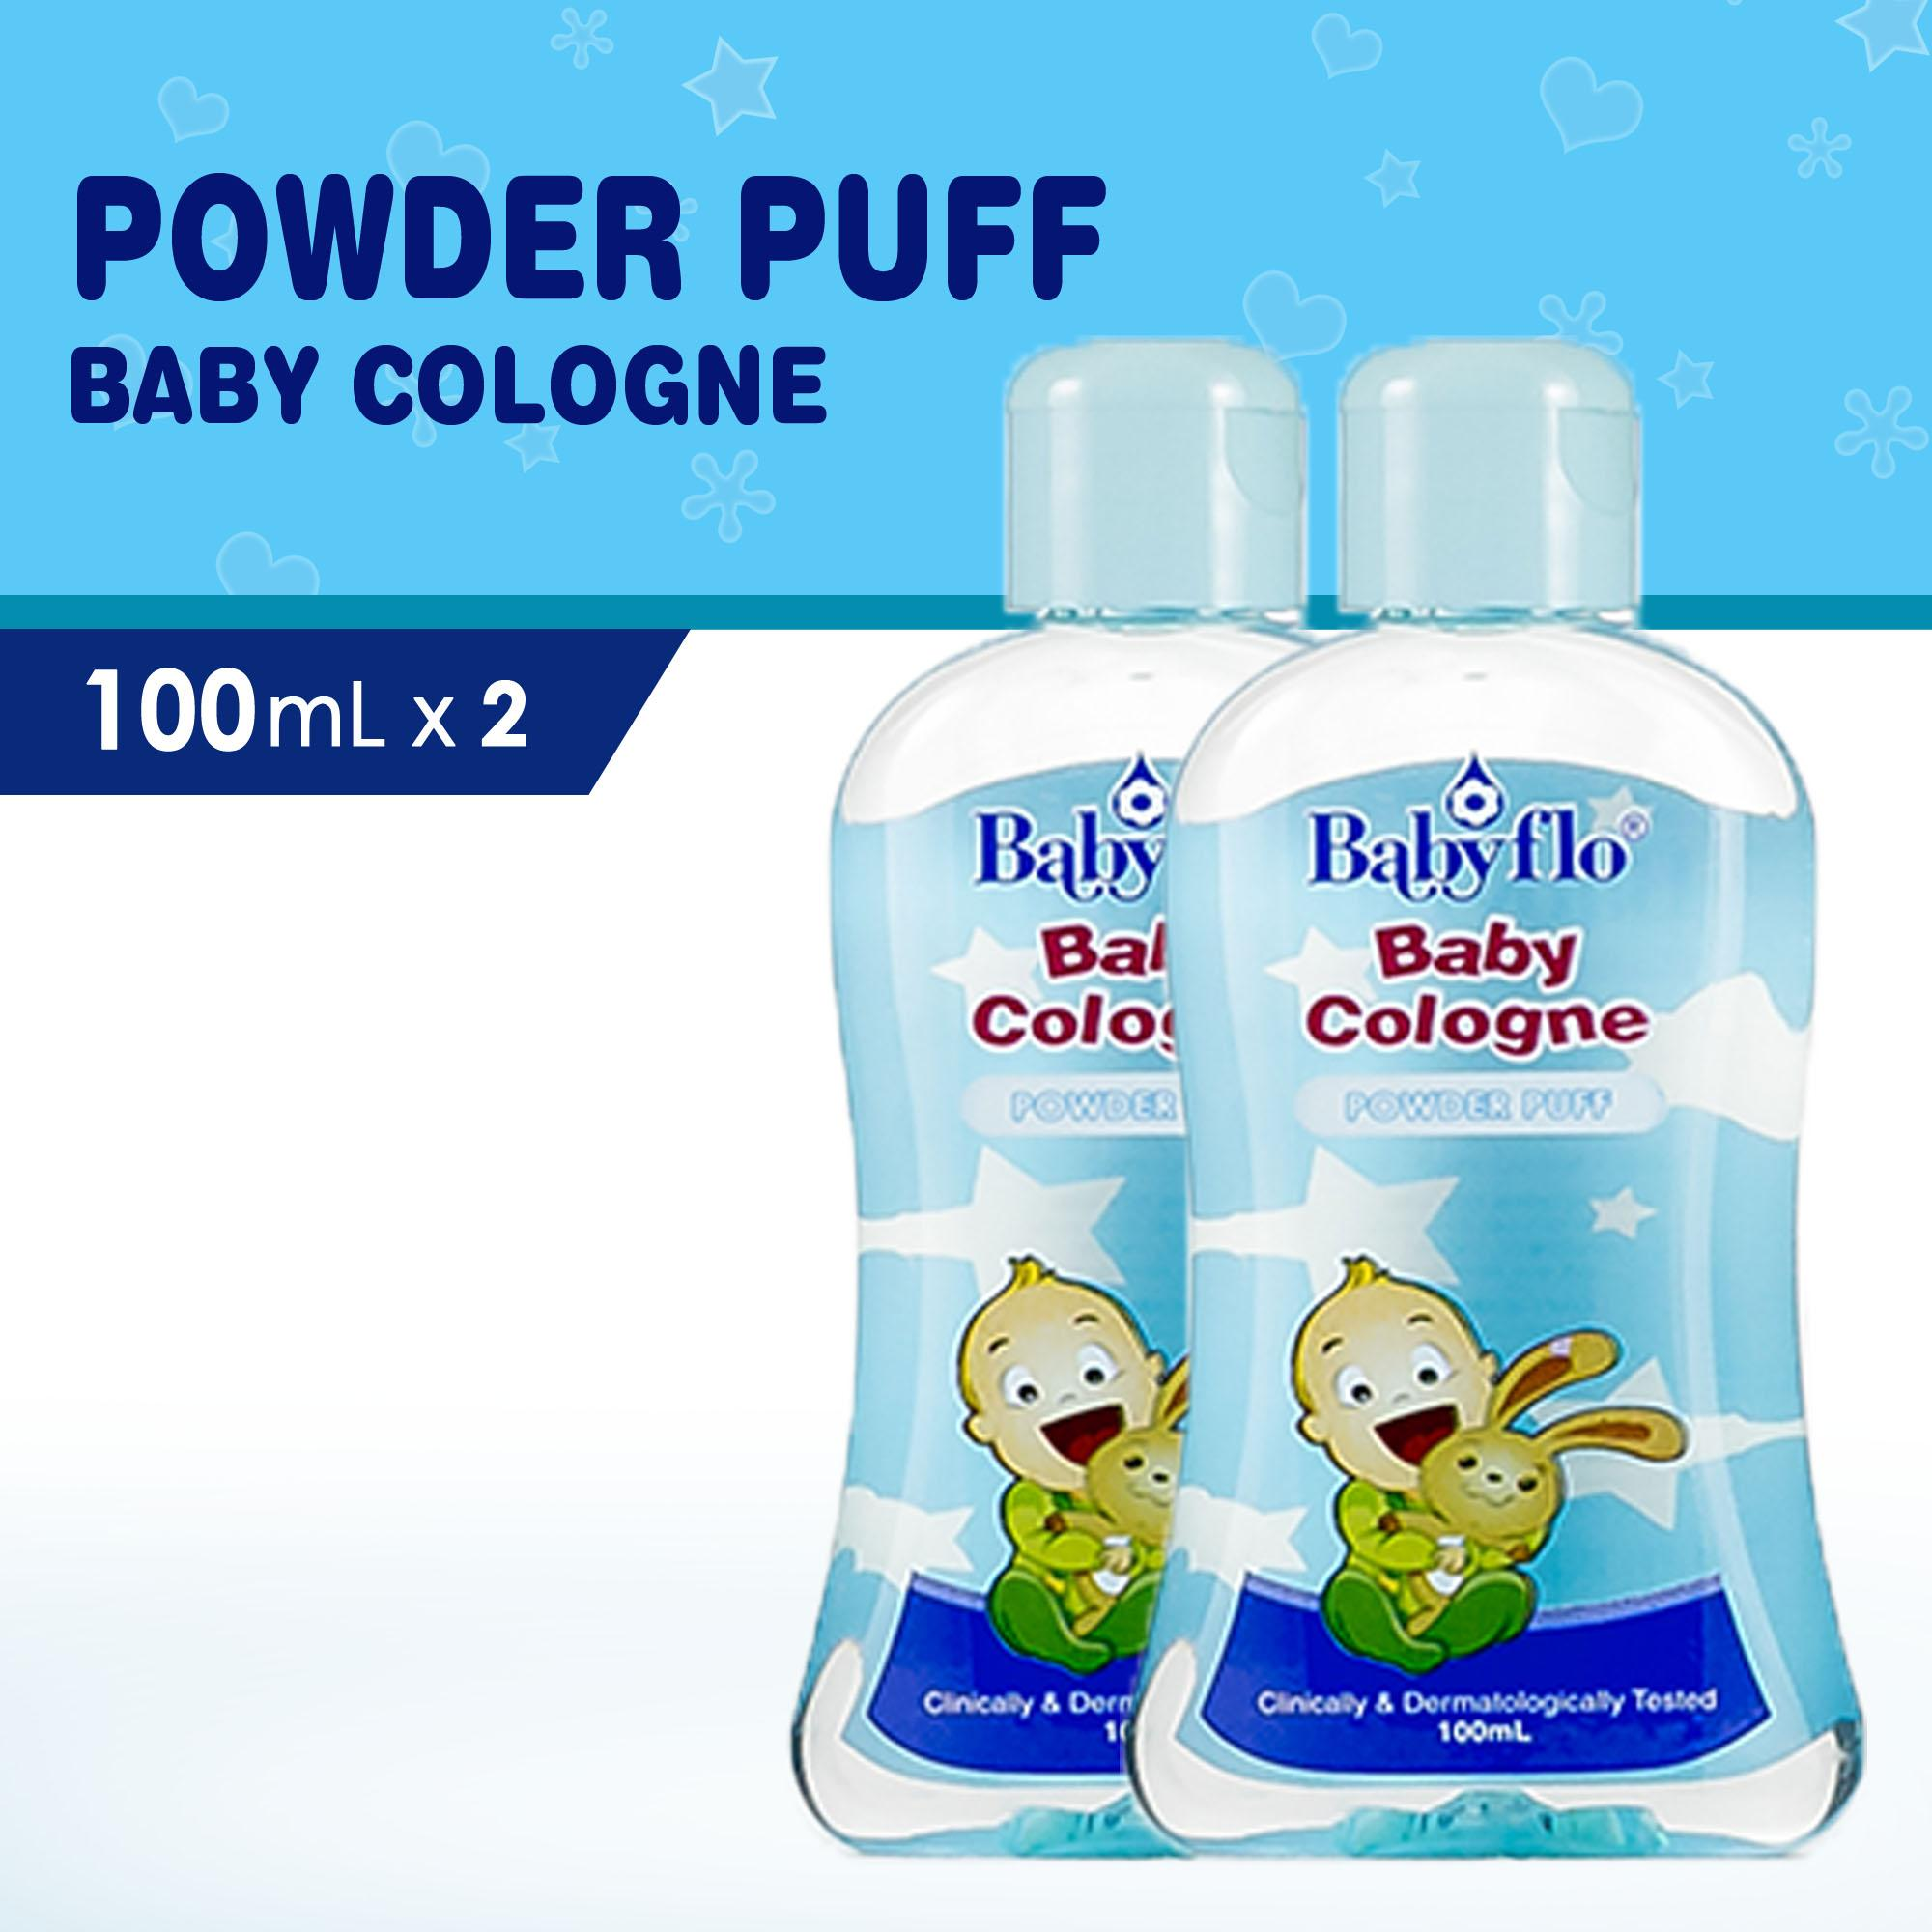 Babyflo Baby Cologne Powder Puff 100ml X2 By Philusa Corporation.